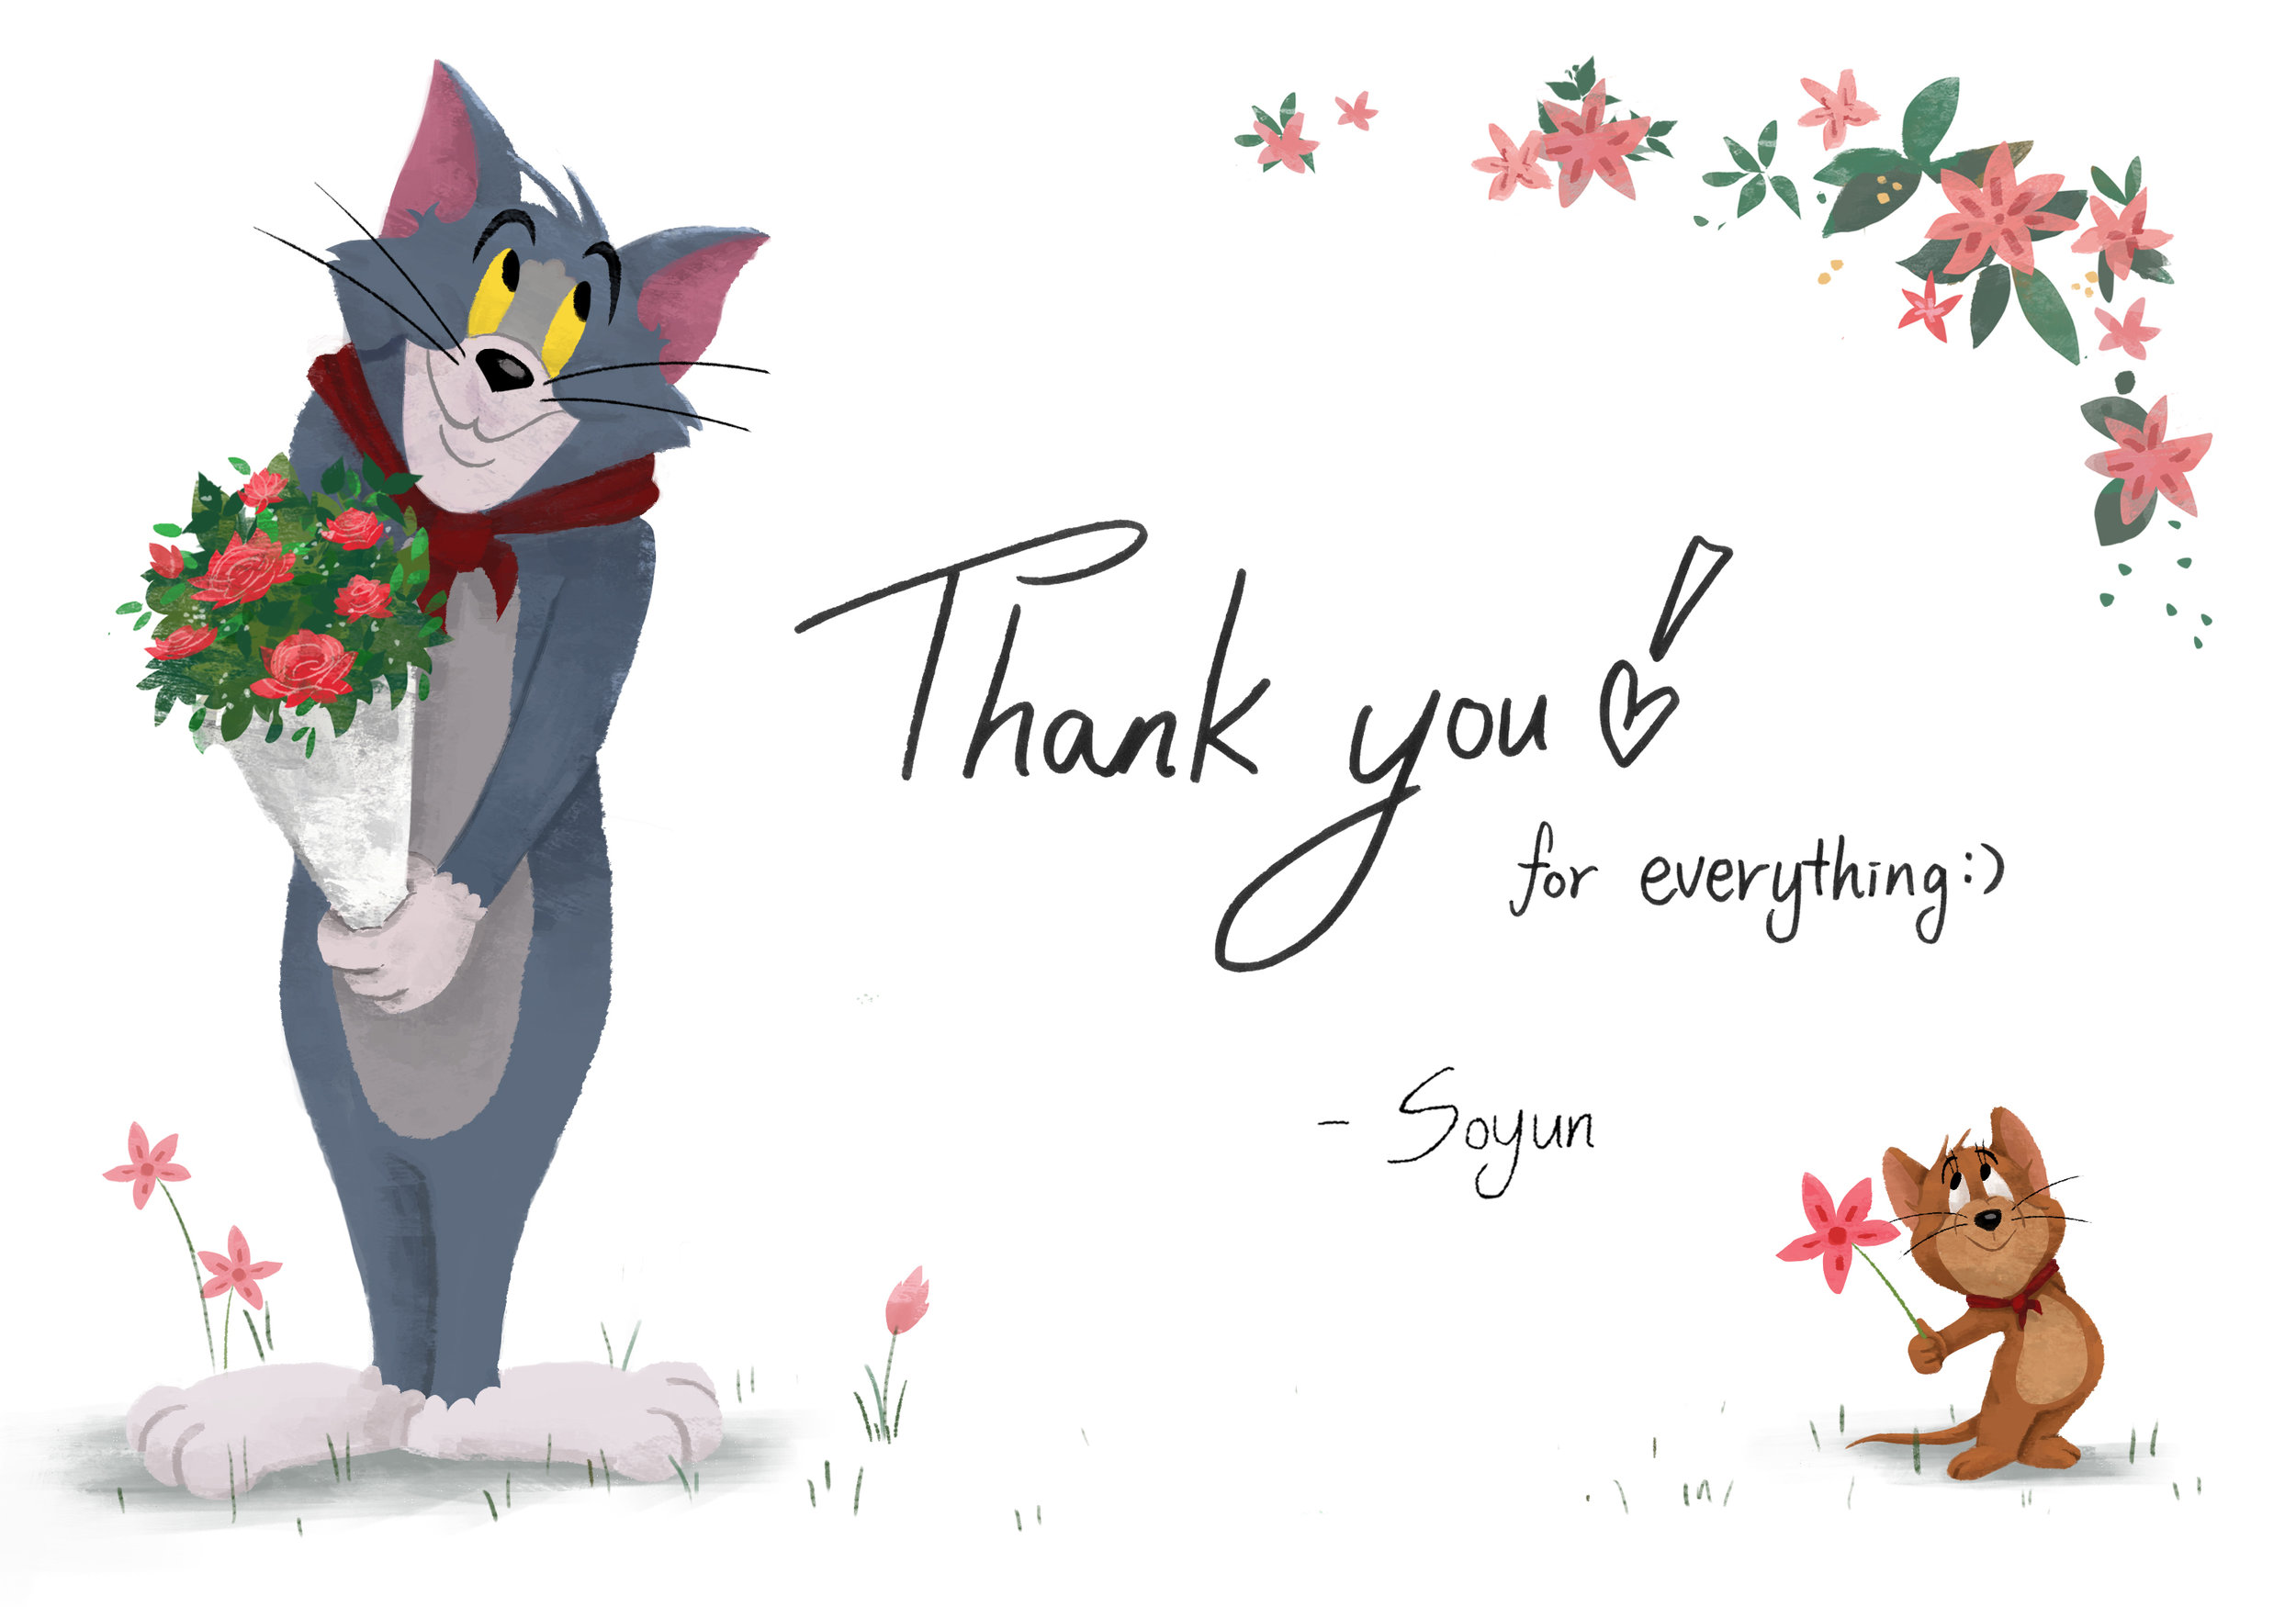 I made 'Thank you cards' for my internship to express my gratitude.